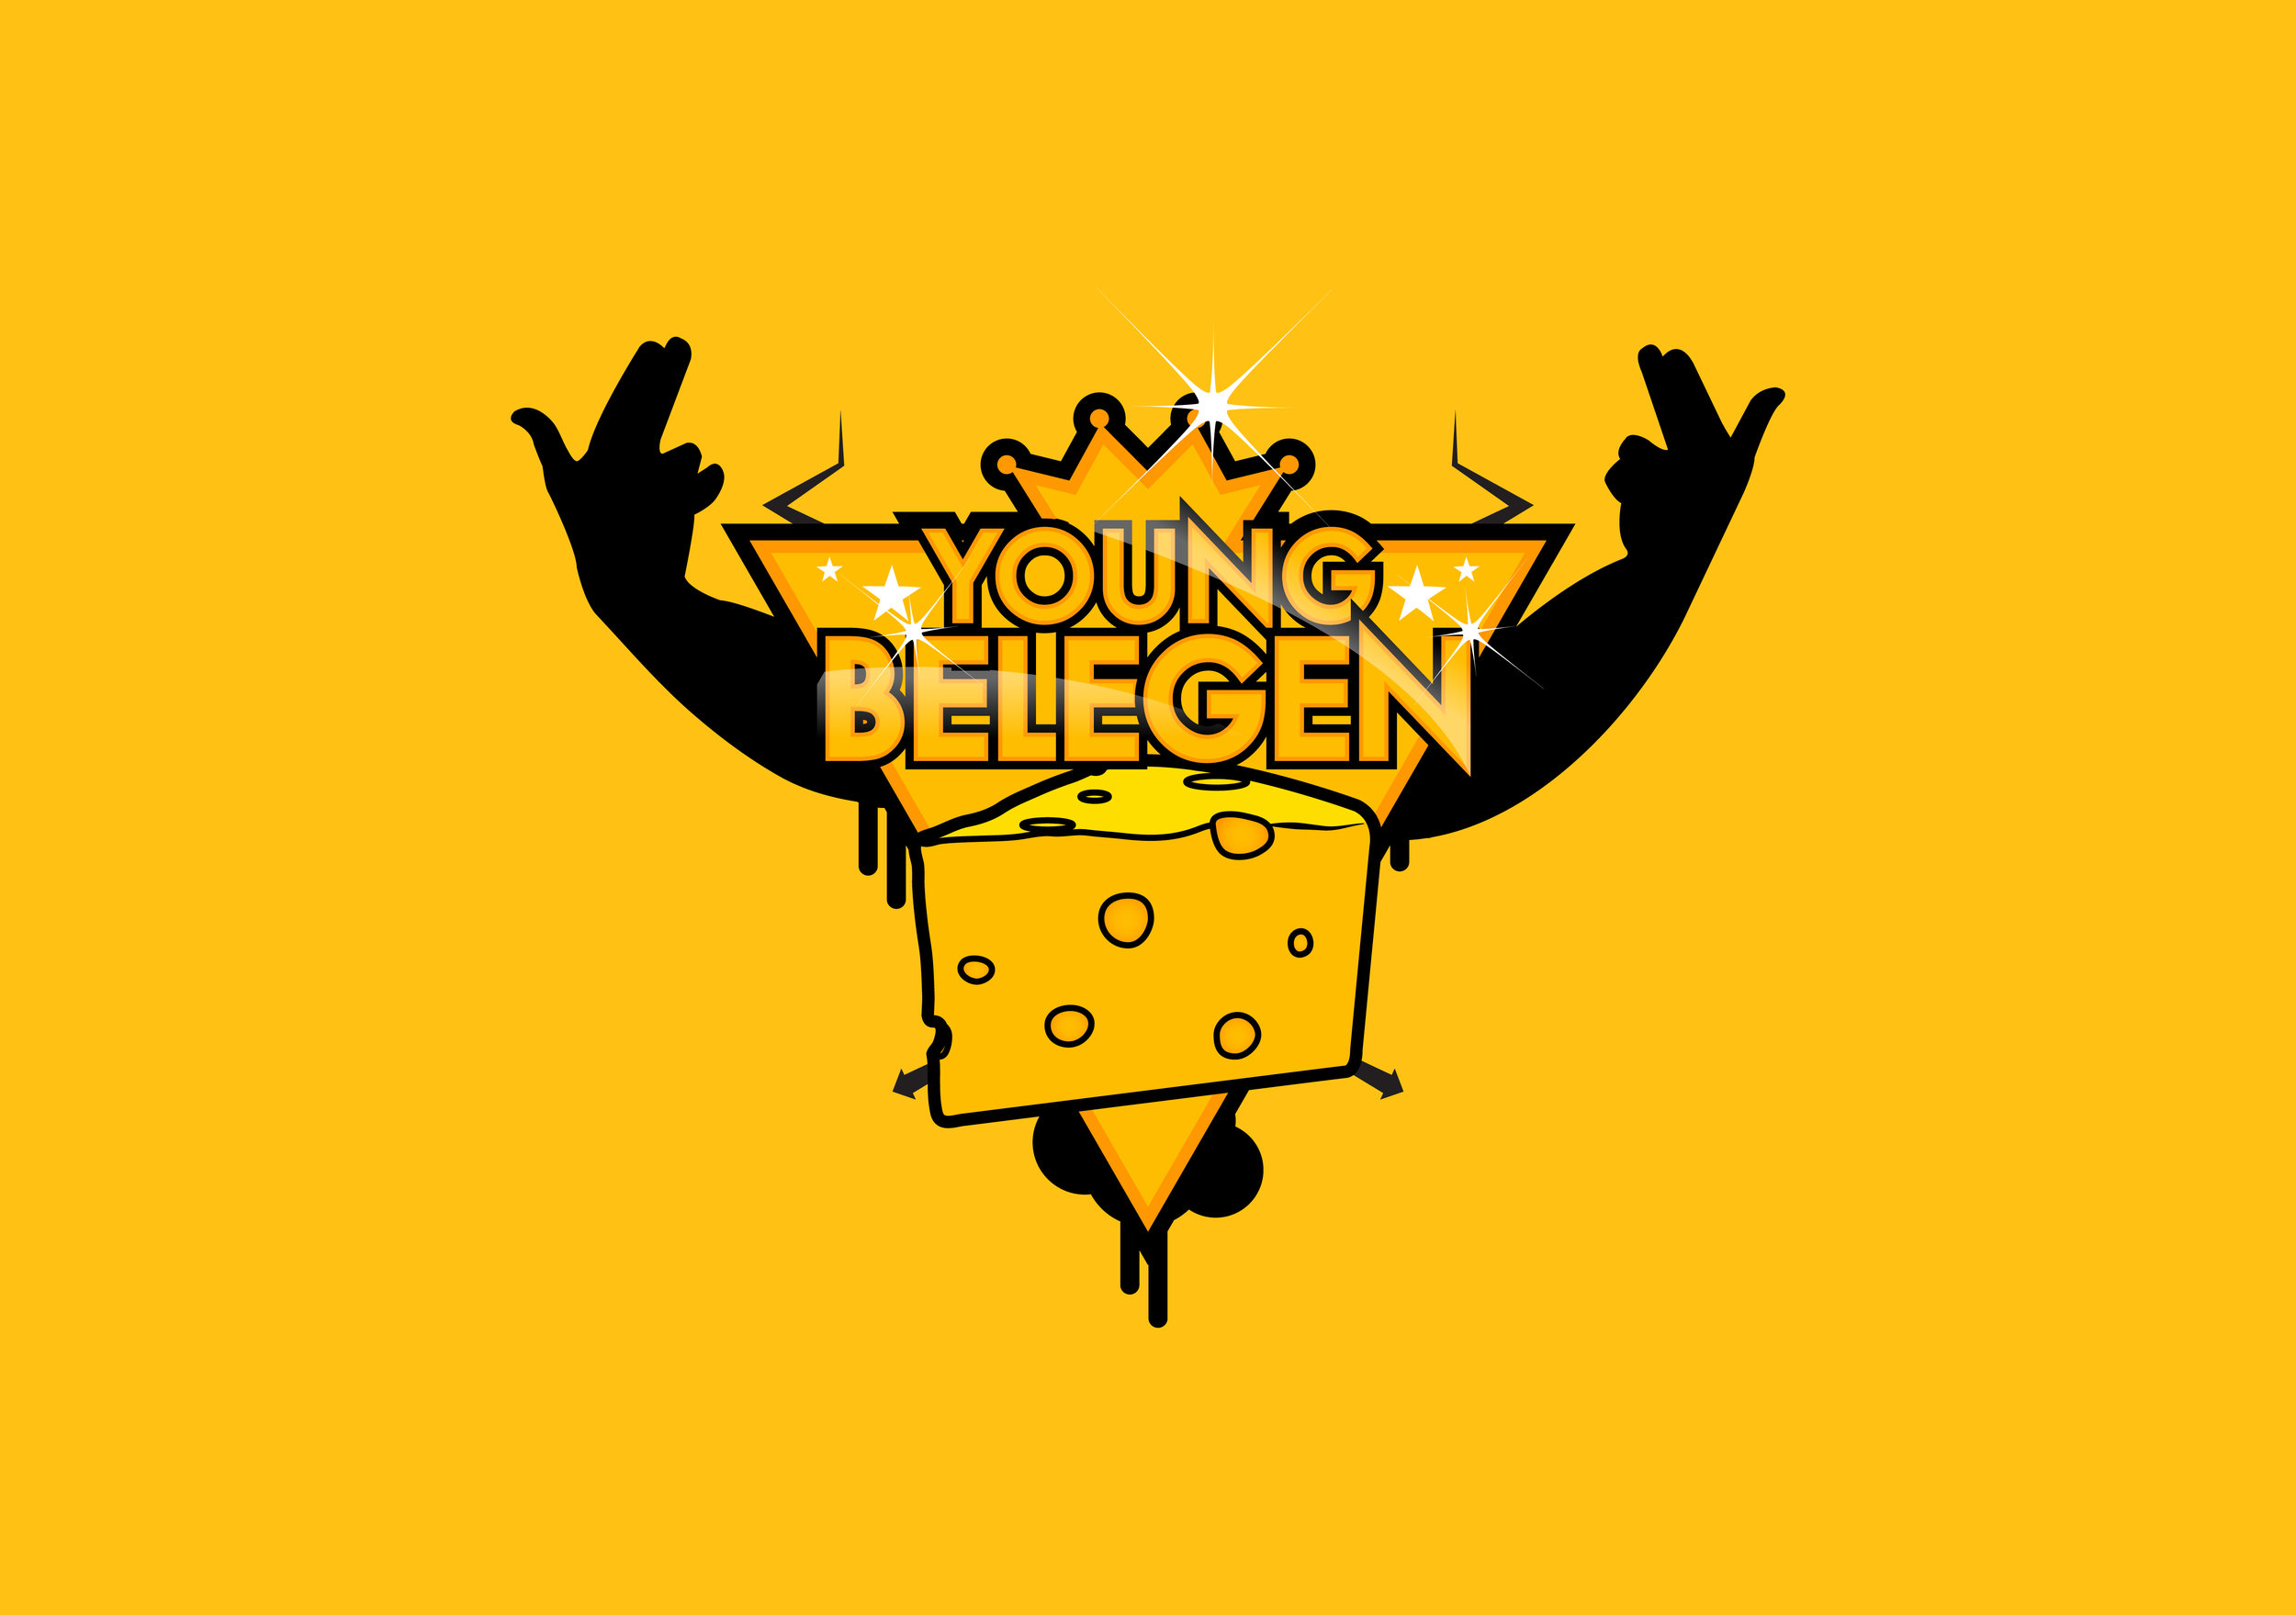 youngbelegen-logo-wallpaper-02 (2).jpg